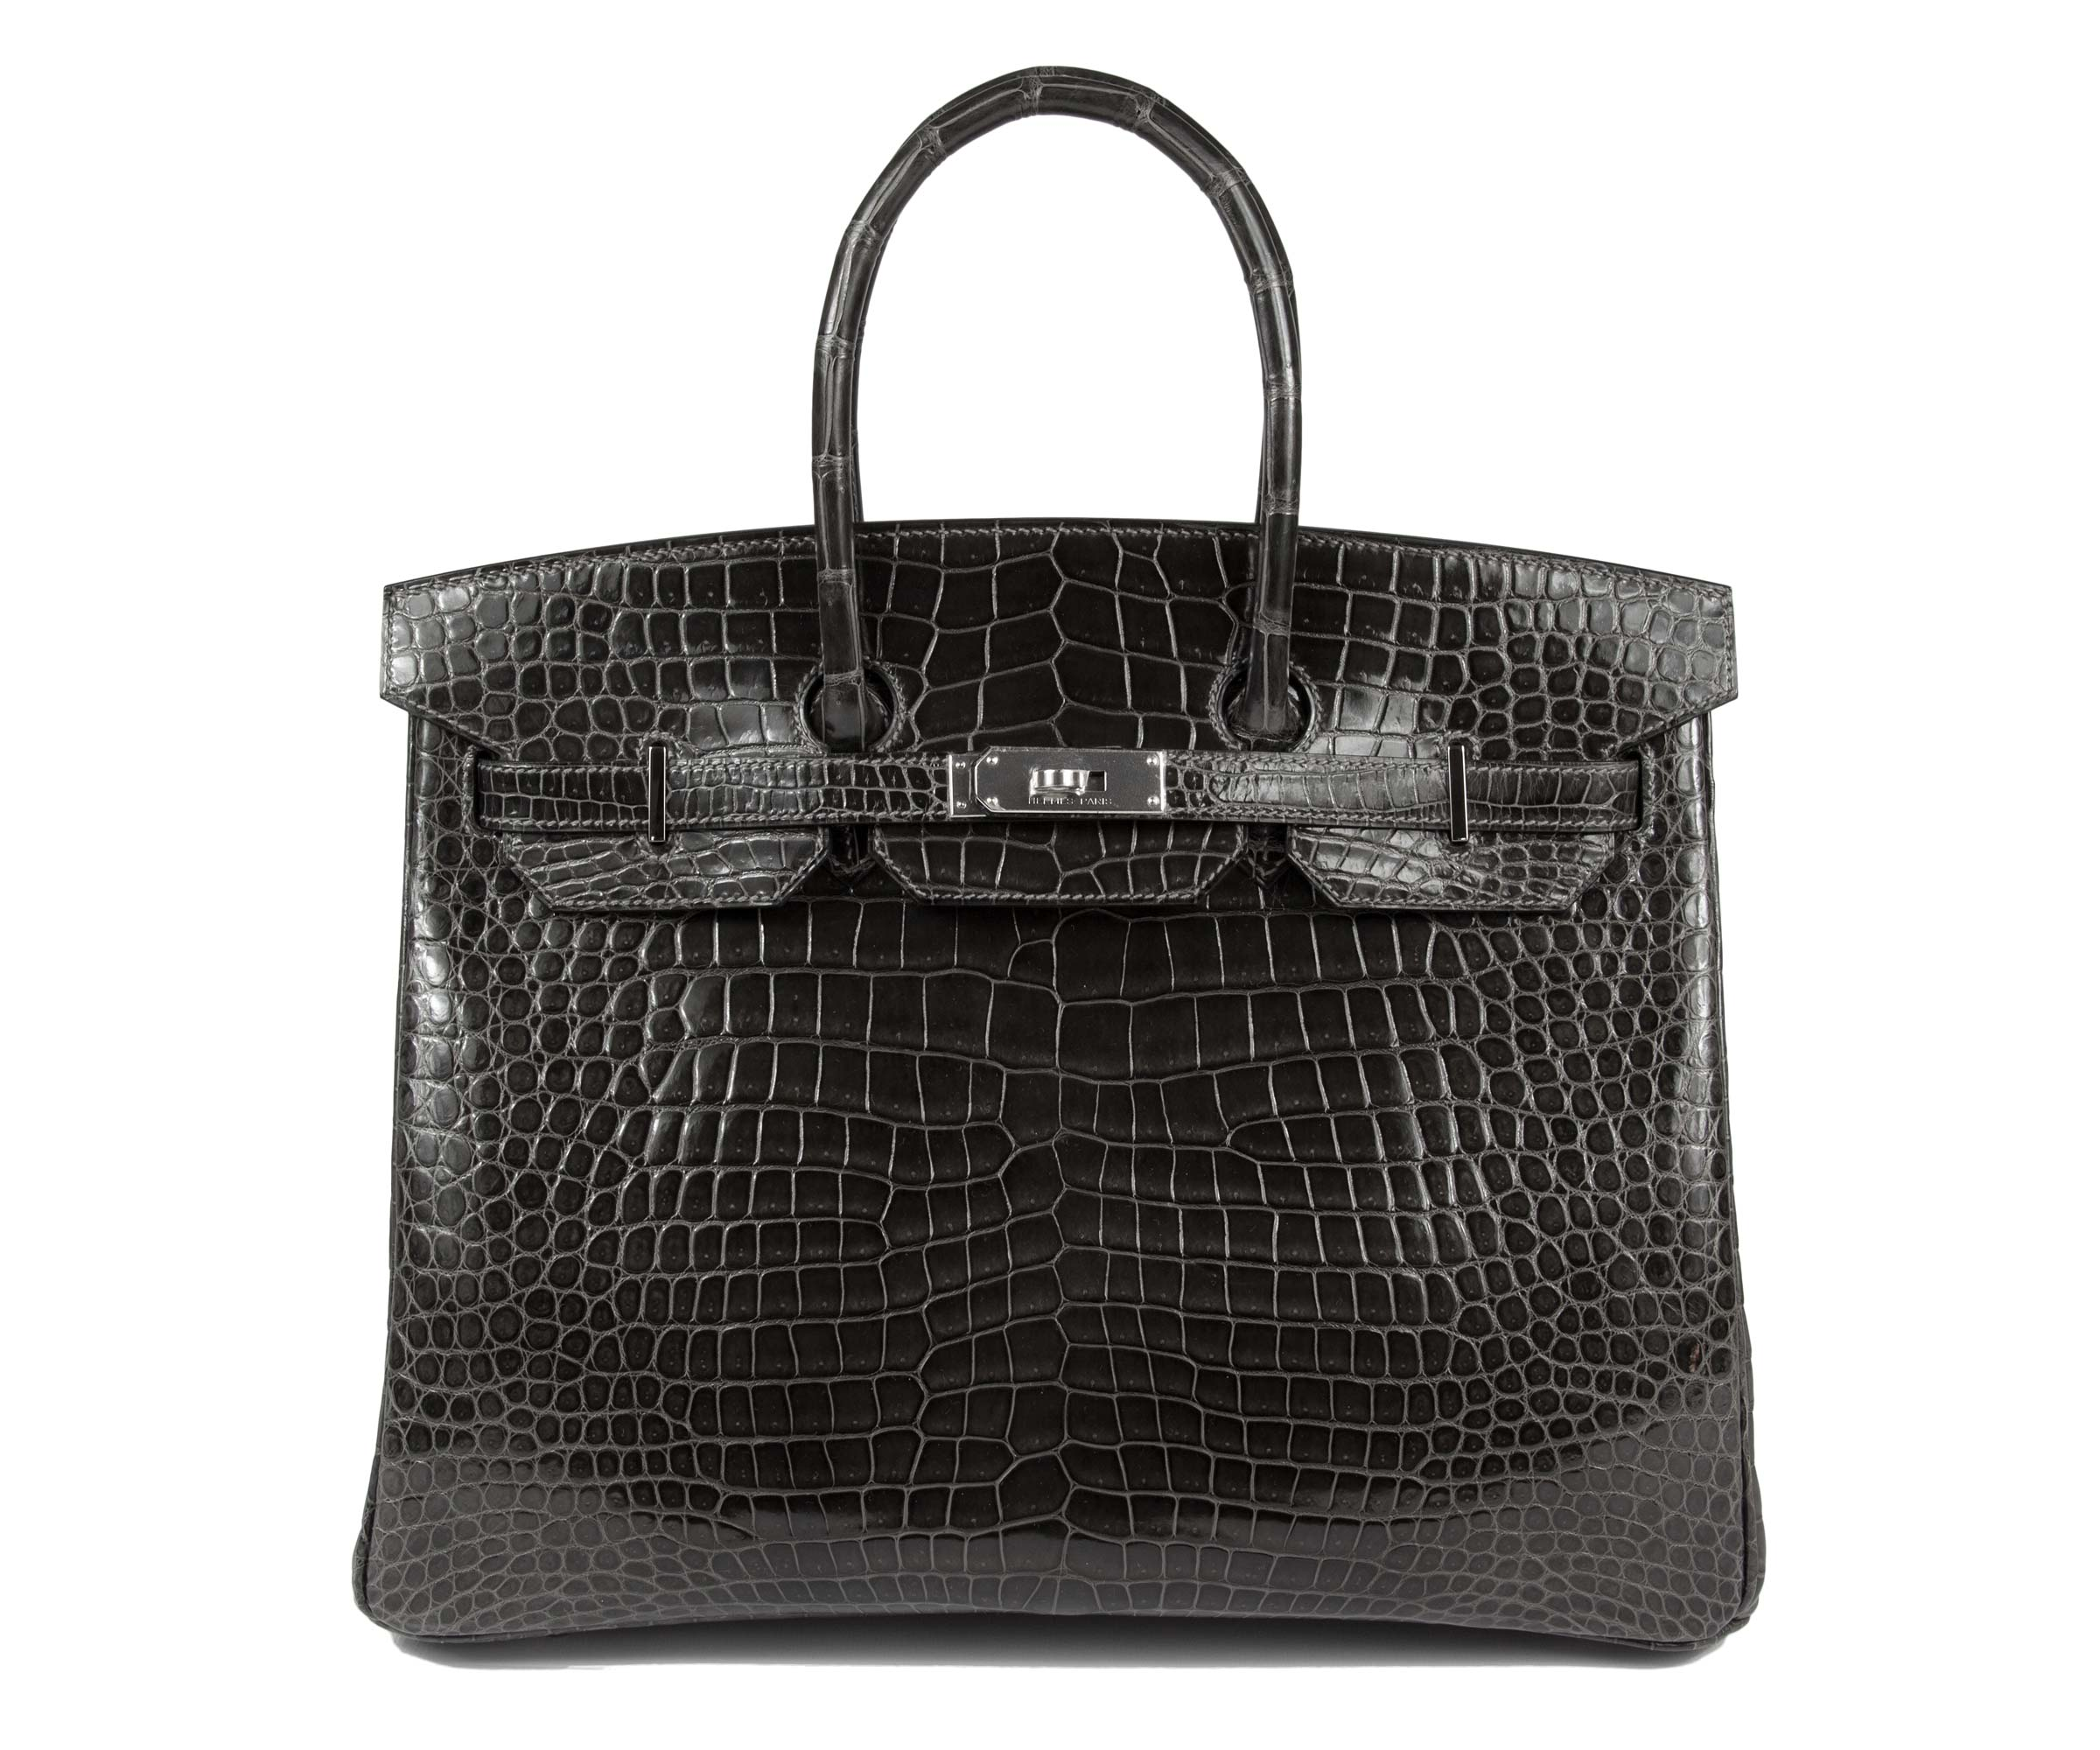 Hermes Birkin Graphite 35cm, Shiny Porosus Croc with Palladium